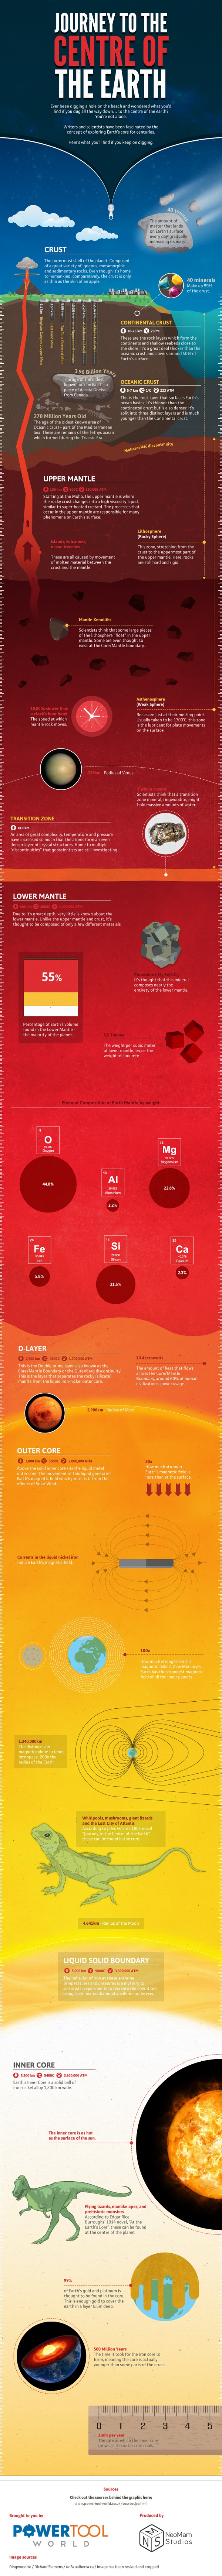 journey to the center of the earth infographic-600w